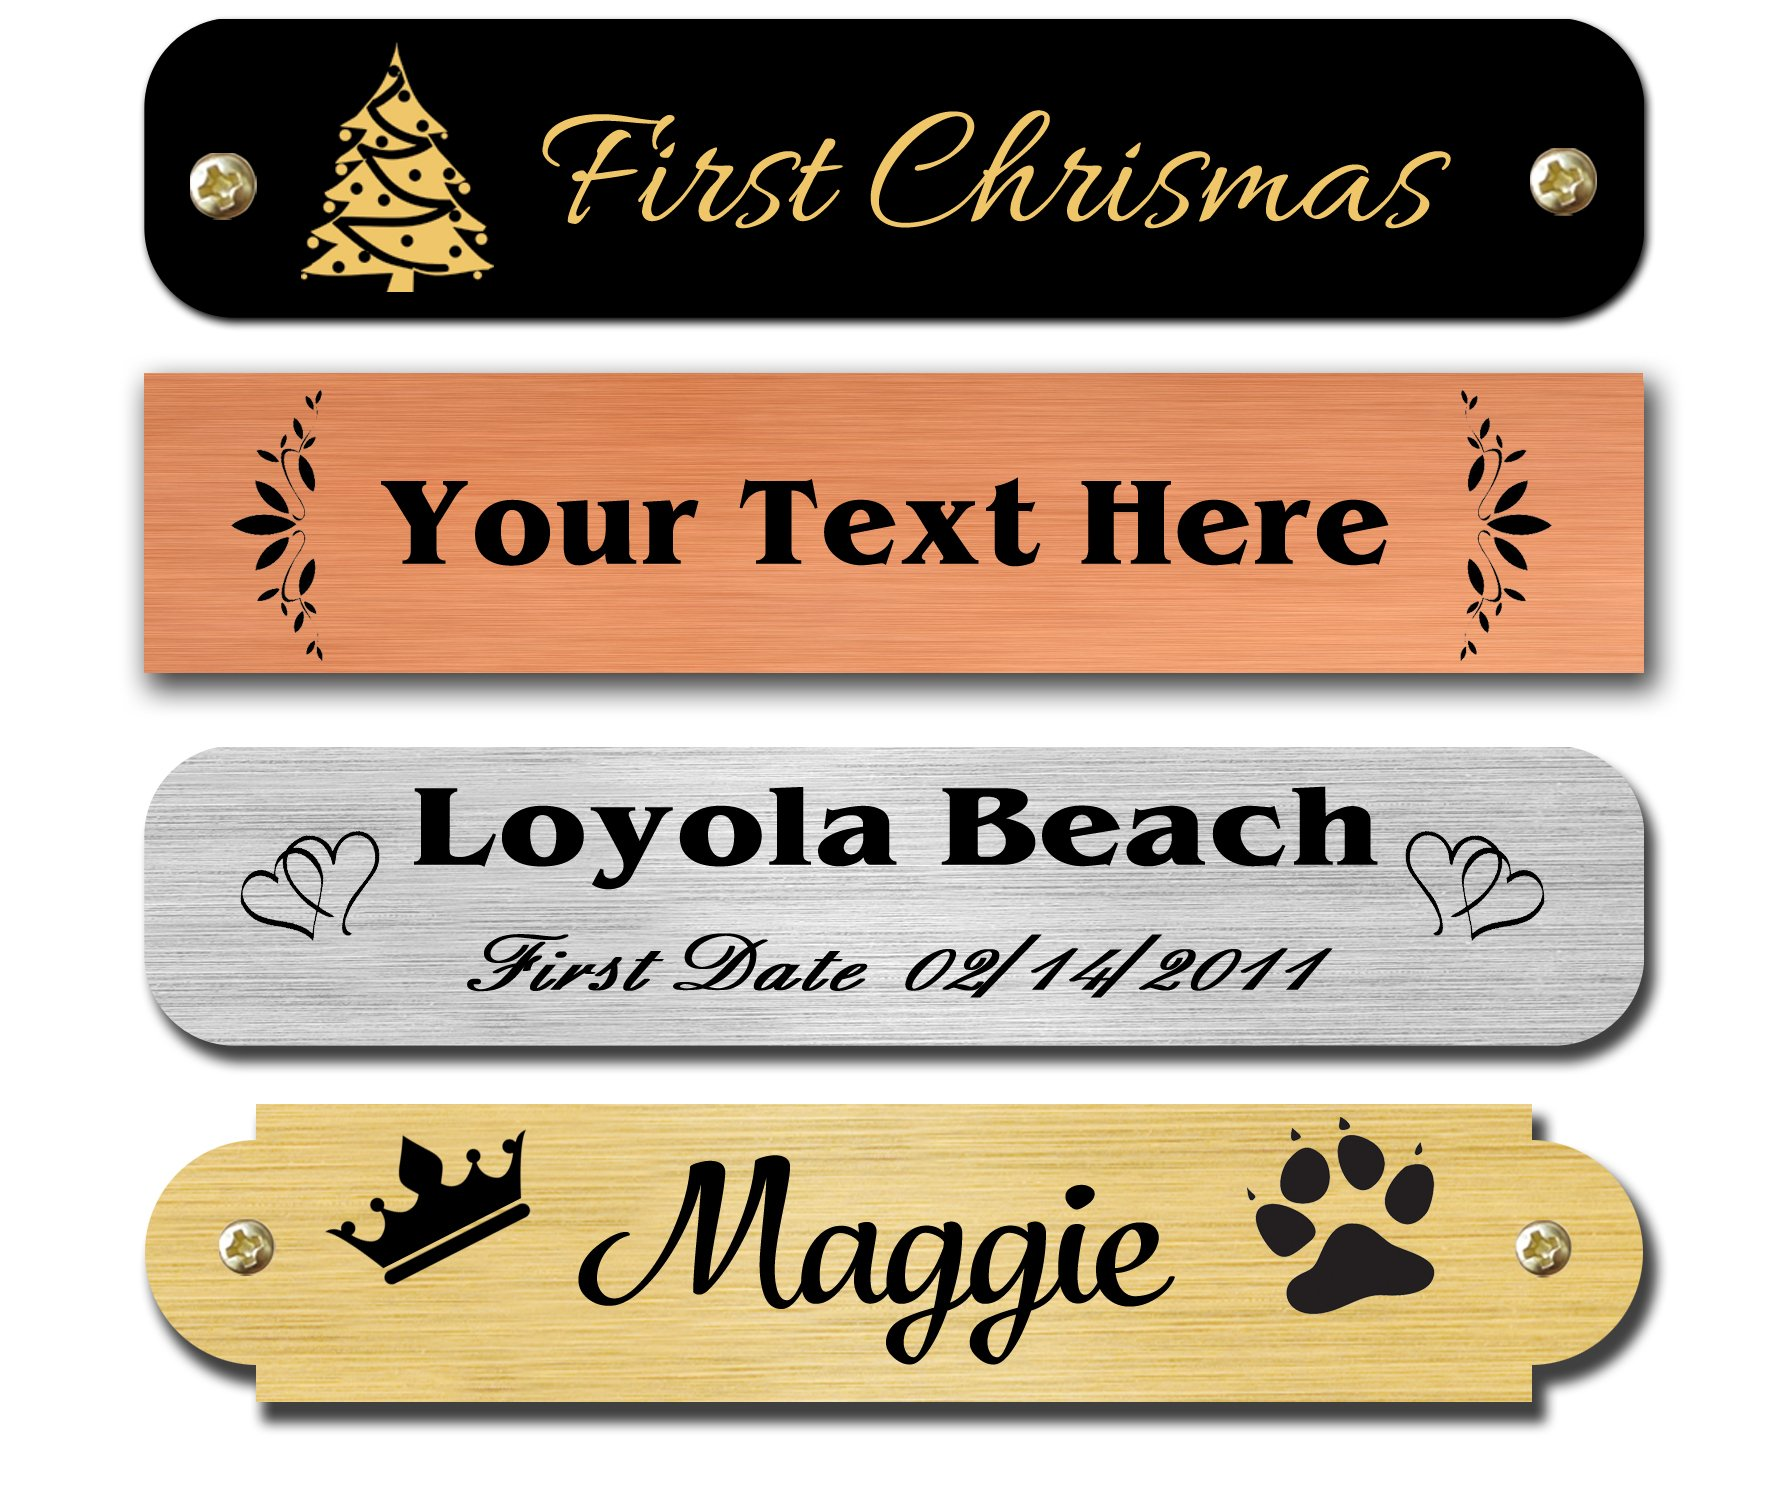 """0.5"""" H x 2.5"""" W, Brass Nameplates, Personalized, Custom Engraved Tag, Name Plaque, Square or Round Corners Made in USA (Satin Brass)"""